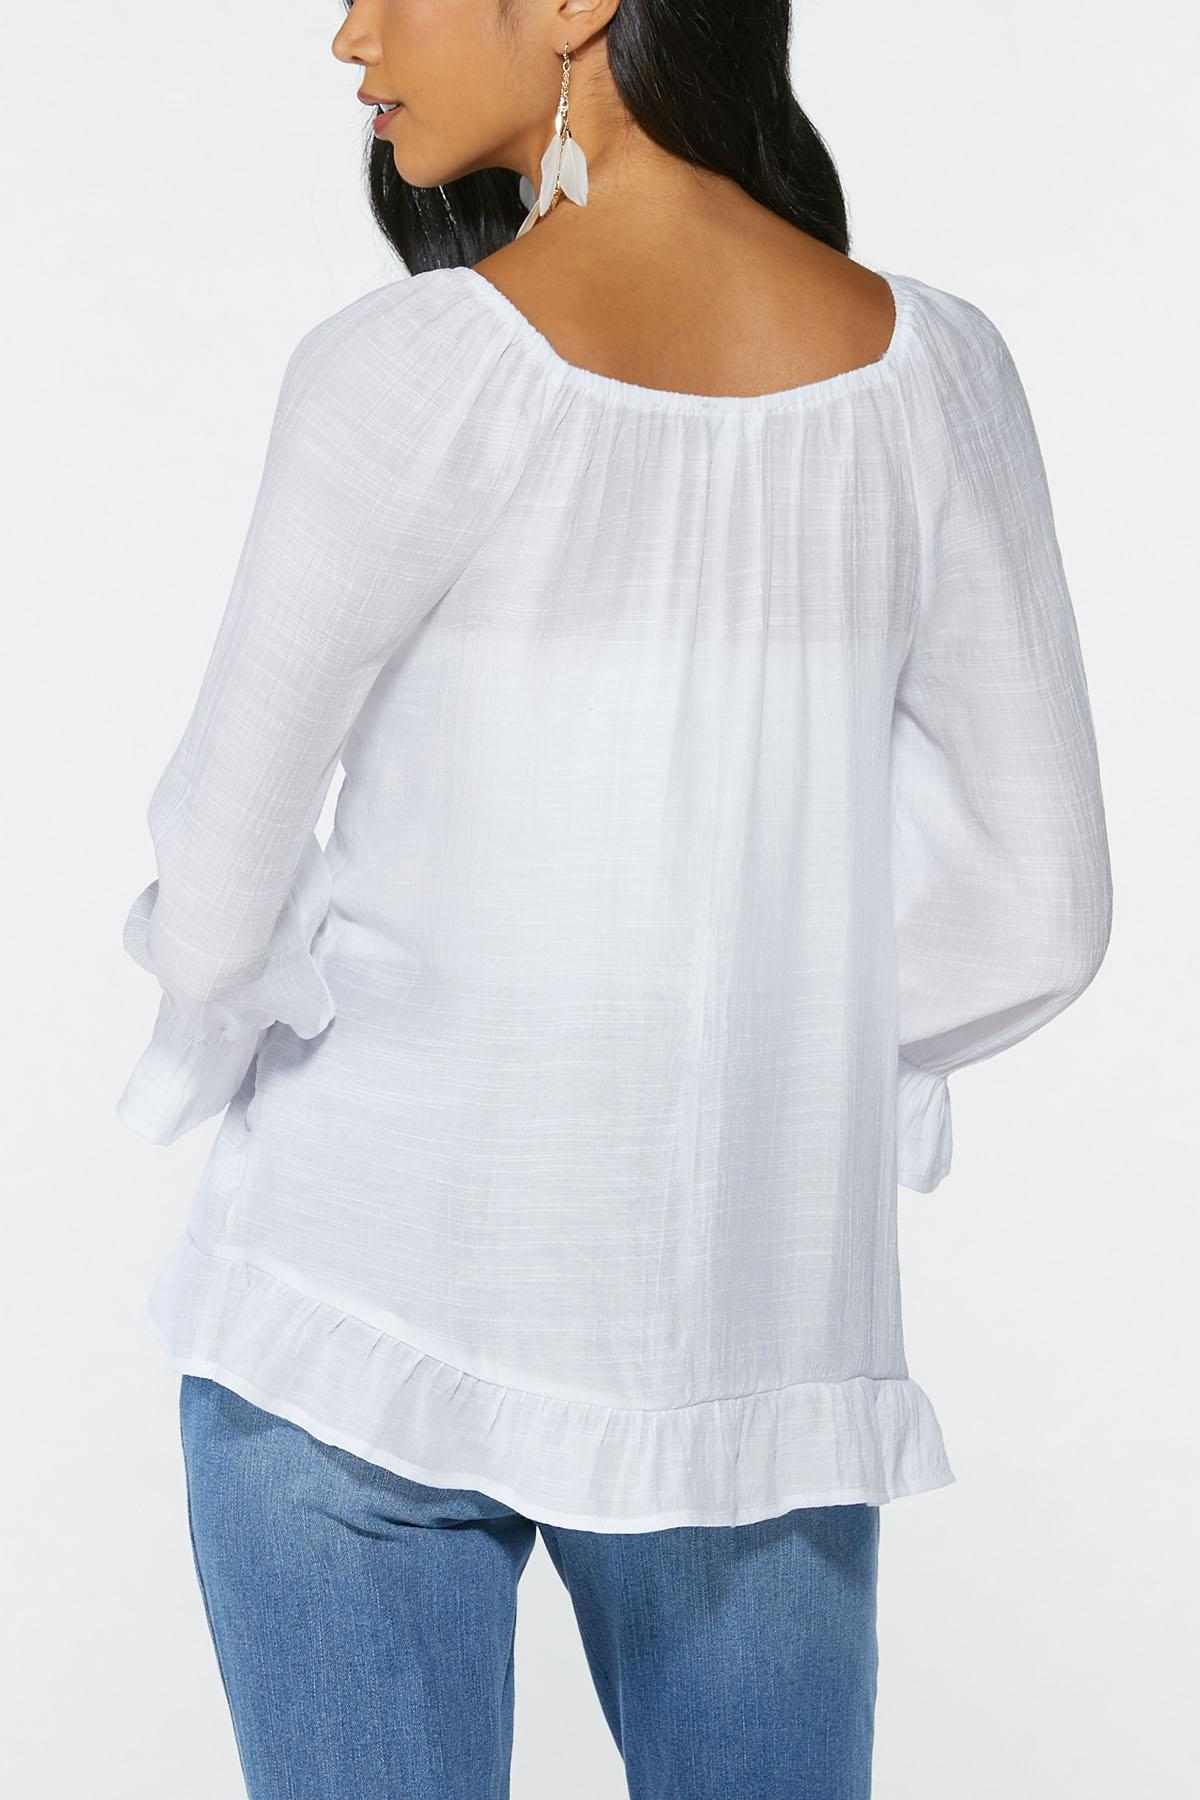 Plus Size Cinched Front Top (Item #44692351)